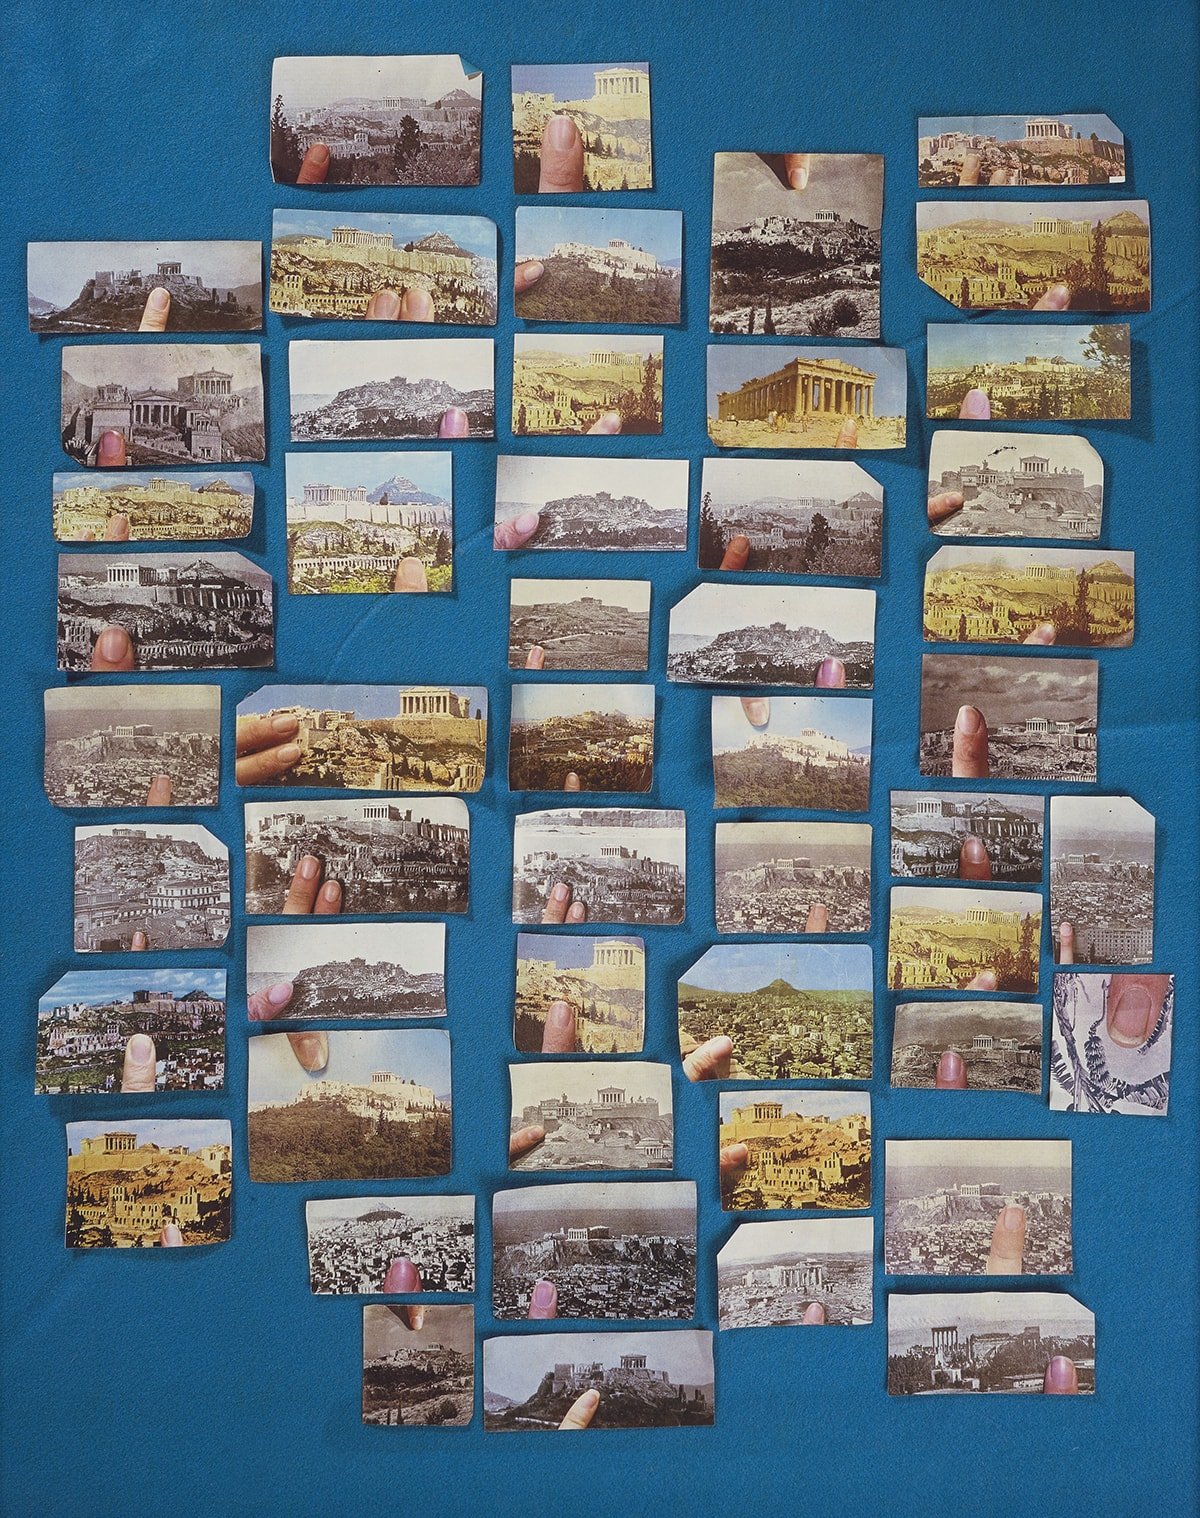 Encyclopedia Grid (Acropolis), Sara Cwynar, 40 x 32 inches, chromogenic print mounted on Plexiglass. A vertical rectangular print showing 51 postcard size images of the Acropolis arranged on a blue felt ground. The images are different sizes, both in color and black and white and mostly in a landscape format. Each also contains the image of a finger or two as if holding the picture. They are arranged in five vertical rows with the last row at right having an additional two images in portrait format. One of these images is the only one that does not show the Acropolis but instead a black and white picture of palm fronds and a banana bunch with a fingertip in color.